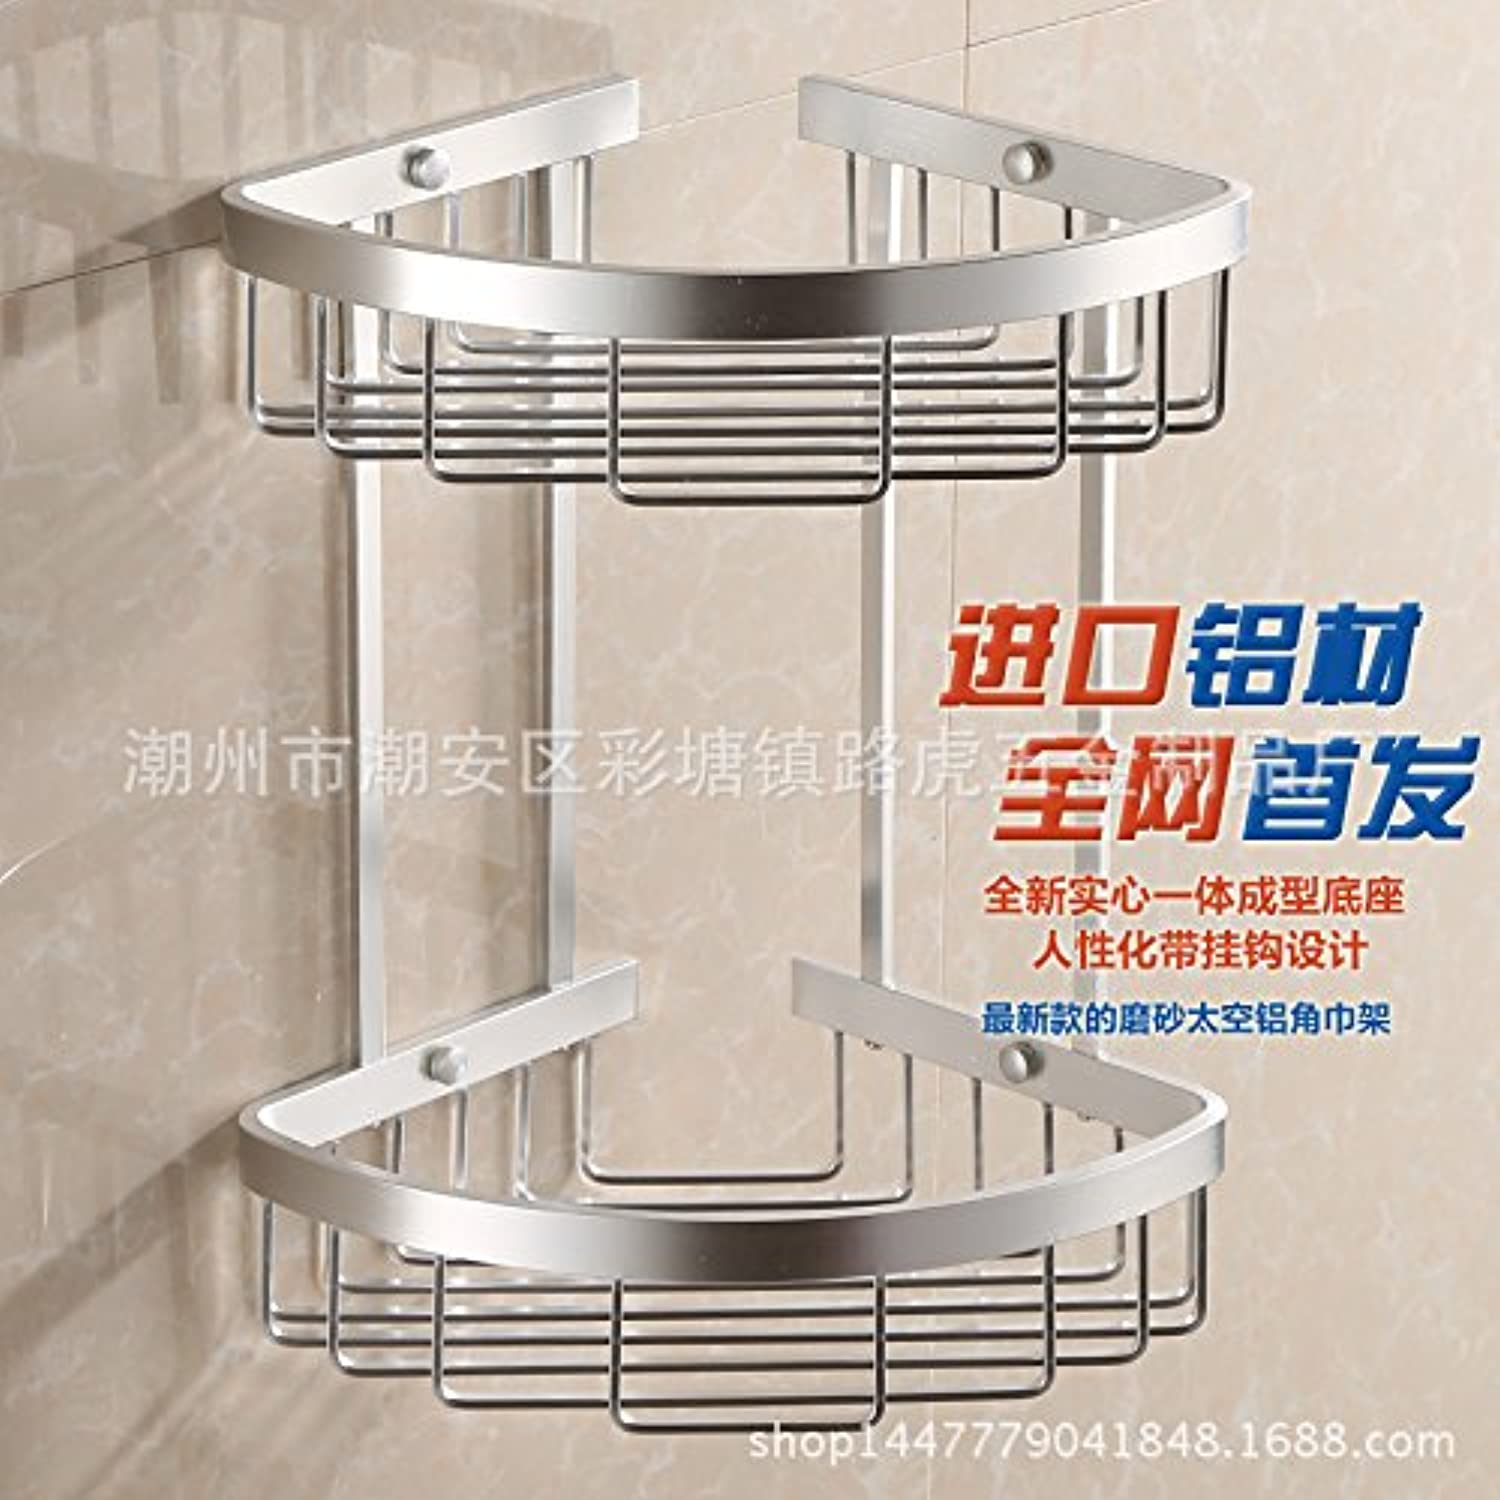 Adding thicker aluminum space corner rack rack storage rack tripod Double-layer